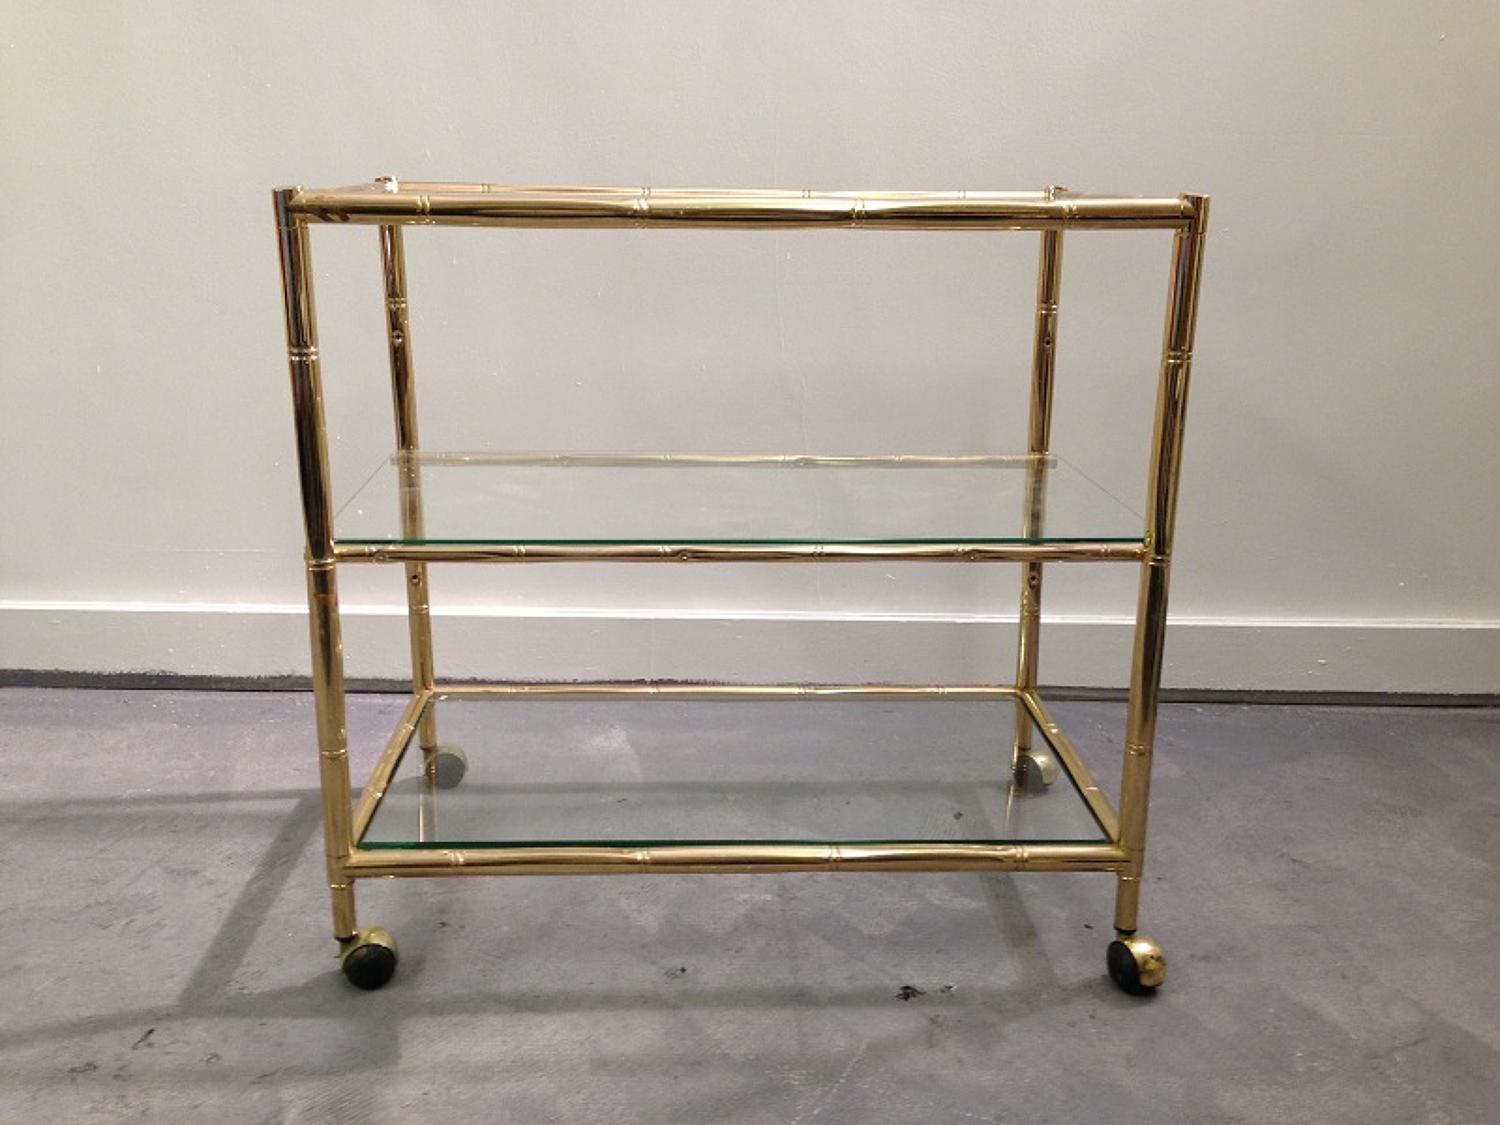 Italian gilt metal bamboo and glass trolley